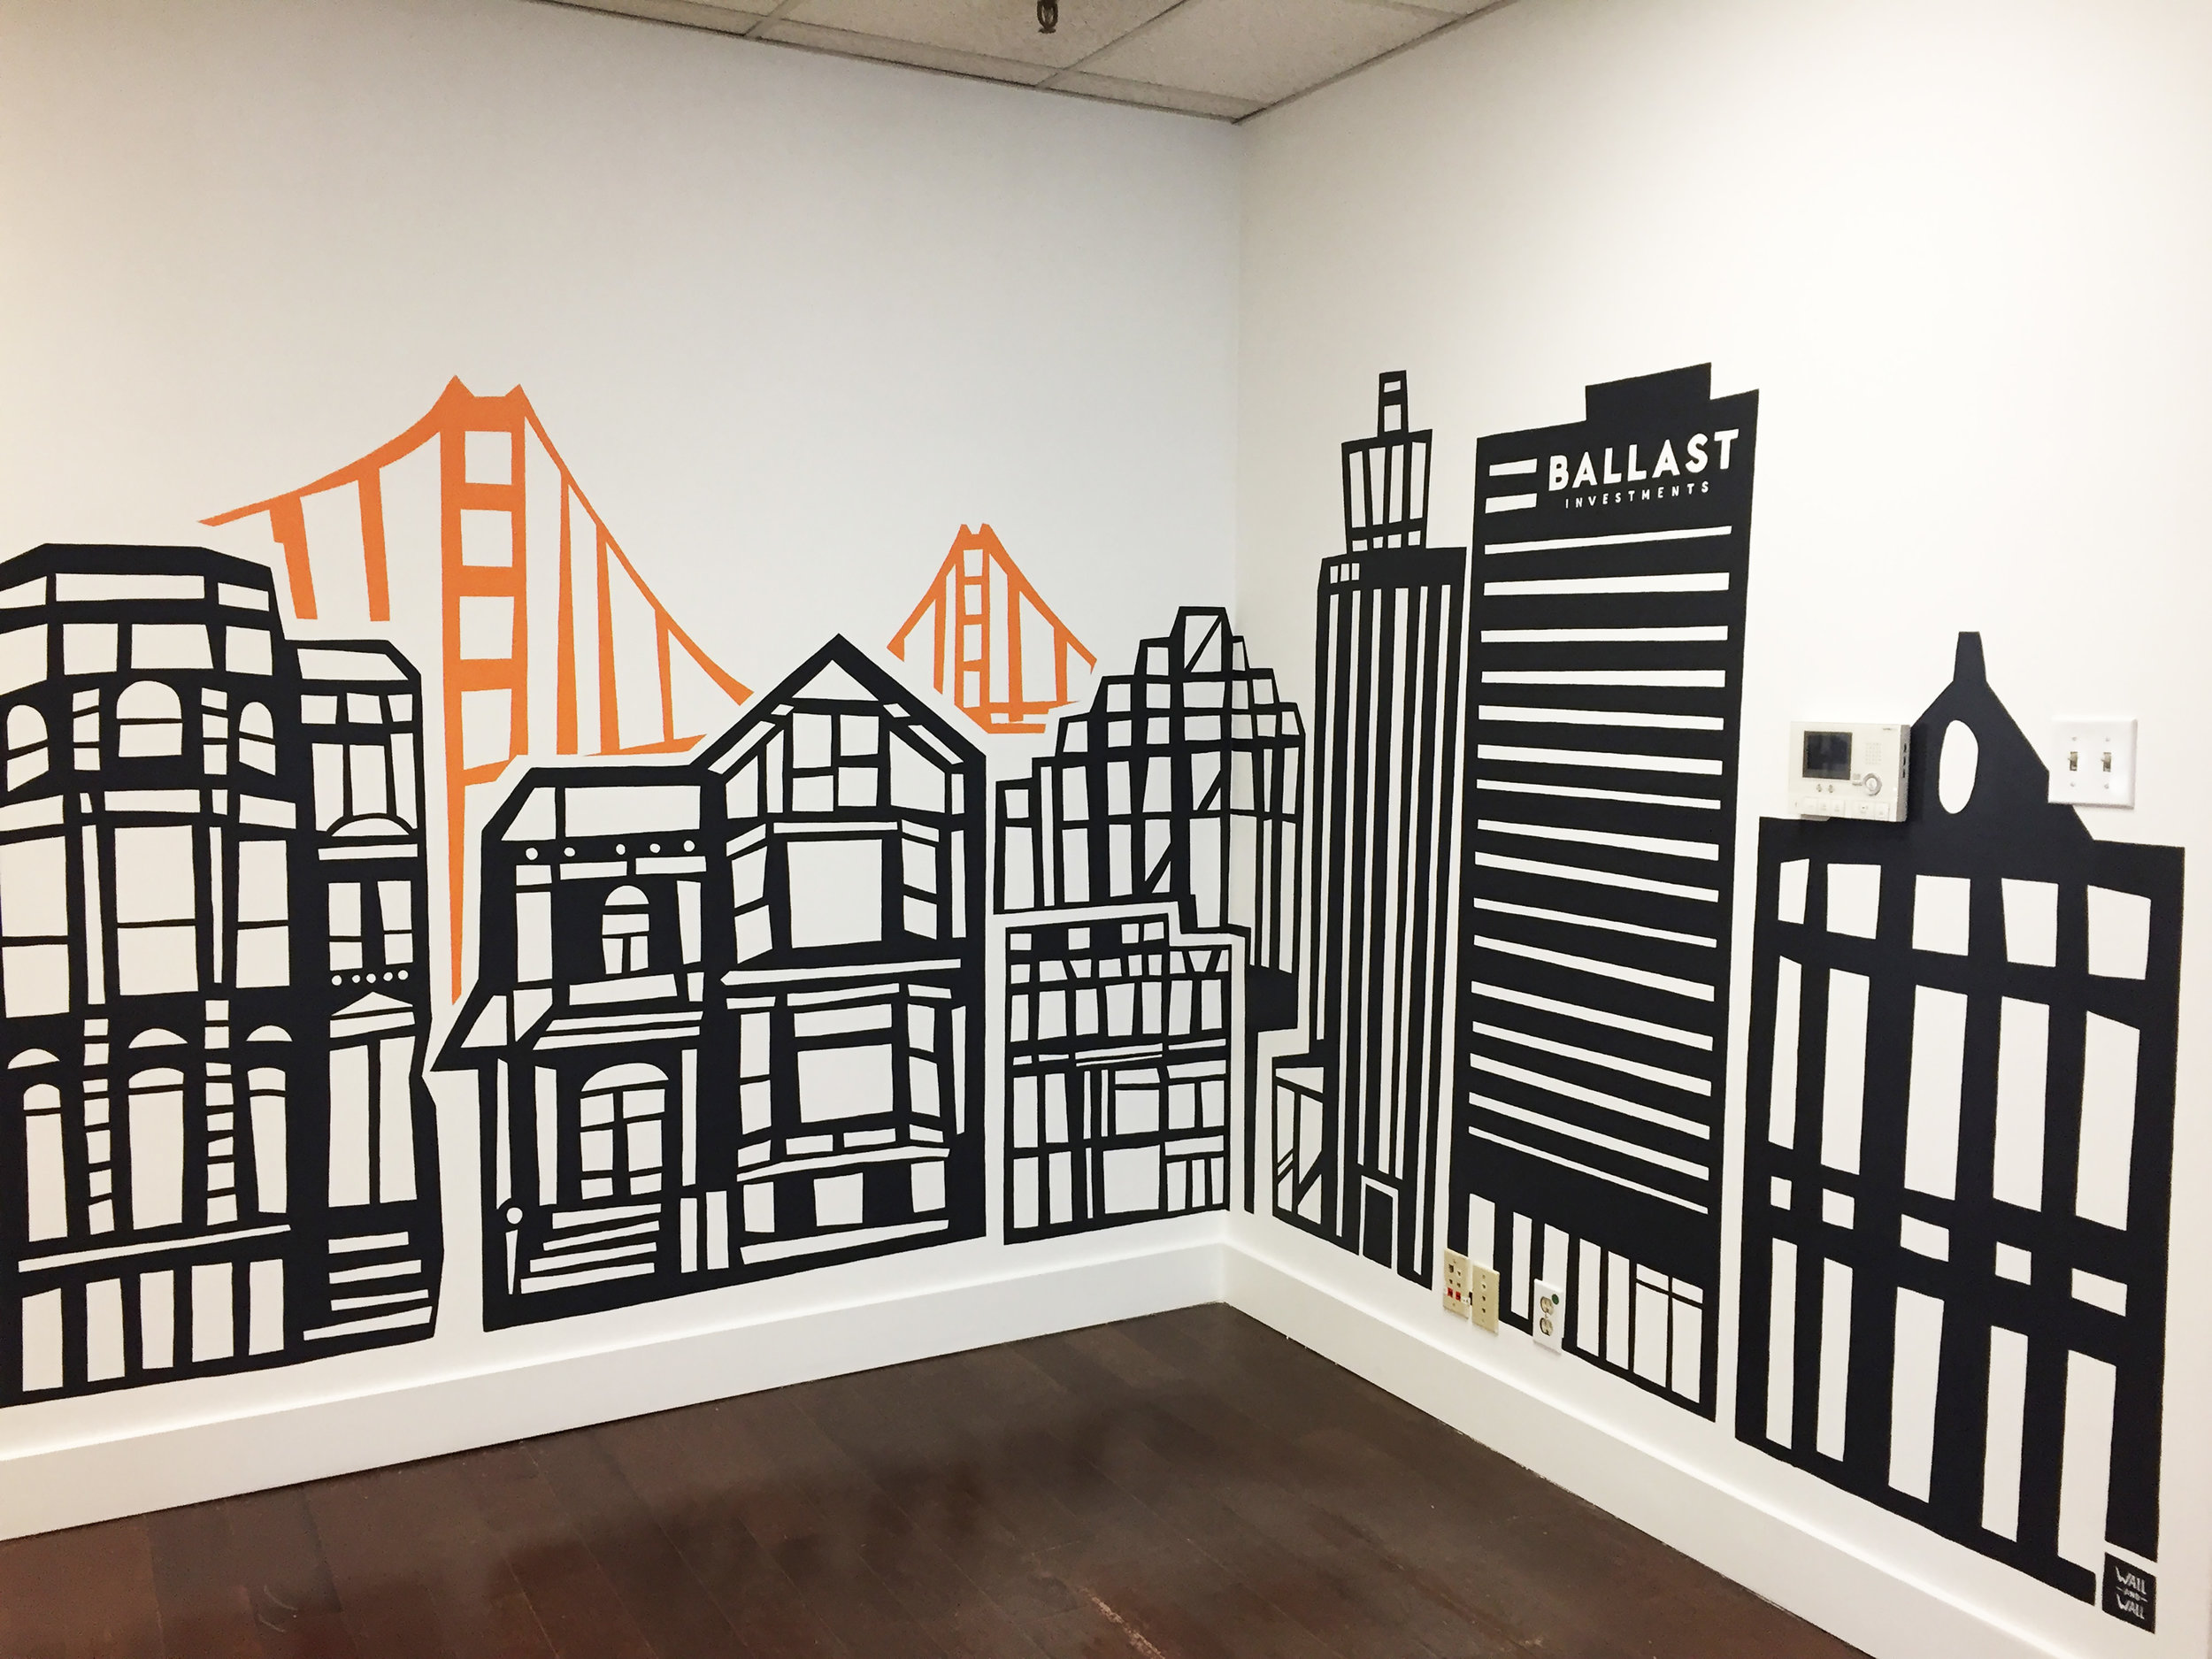 Office-commercial-mural-san-francisco-ballast-wall-and-wall-mural-company.jpeg